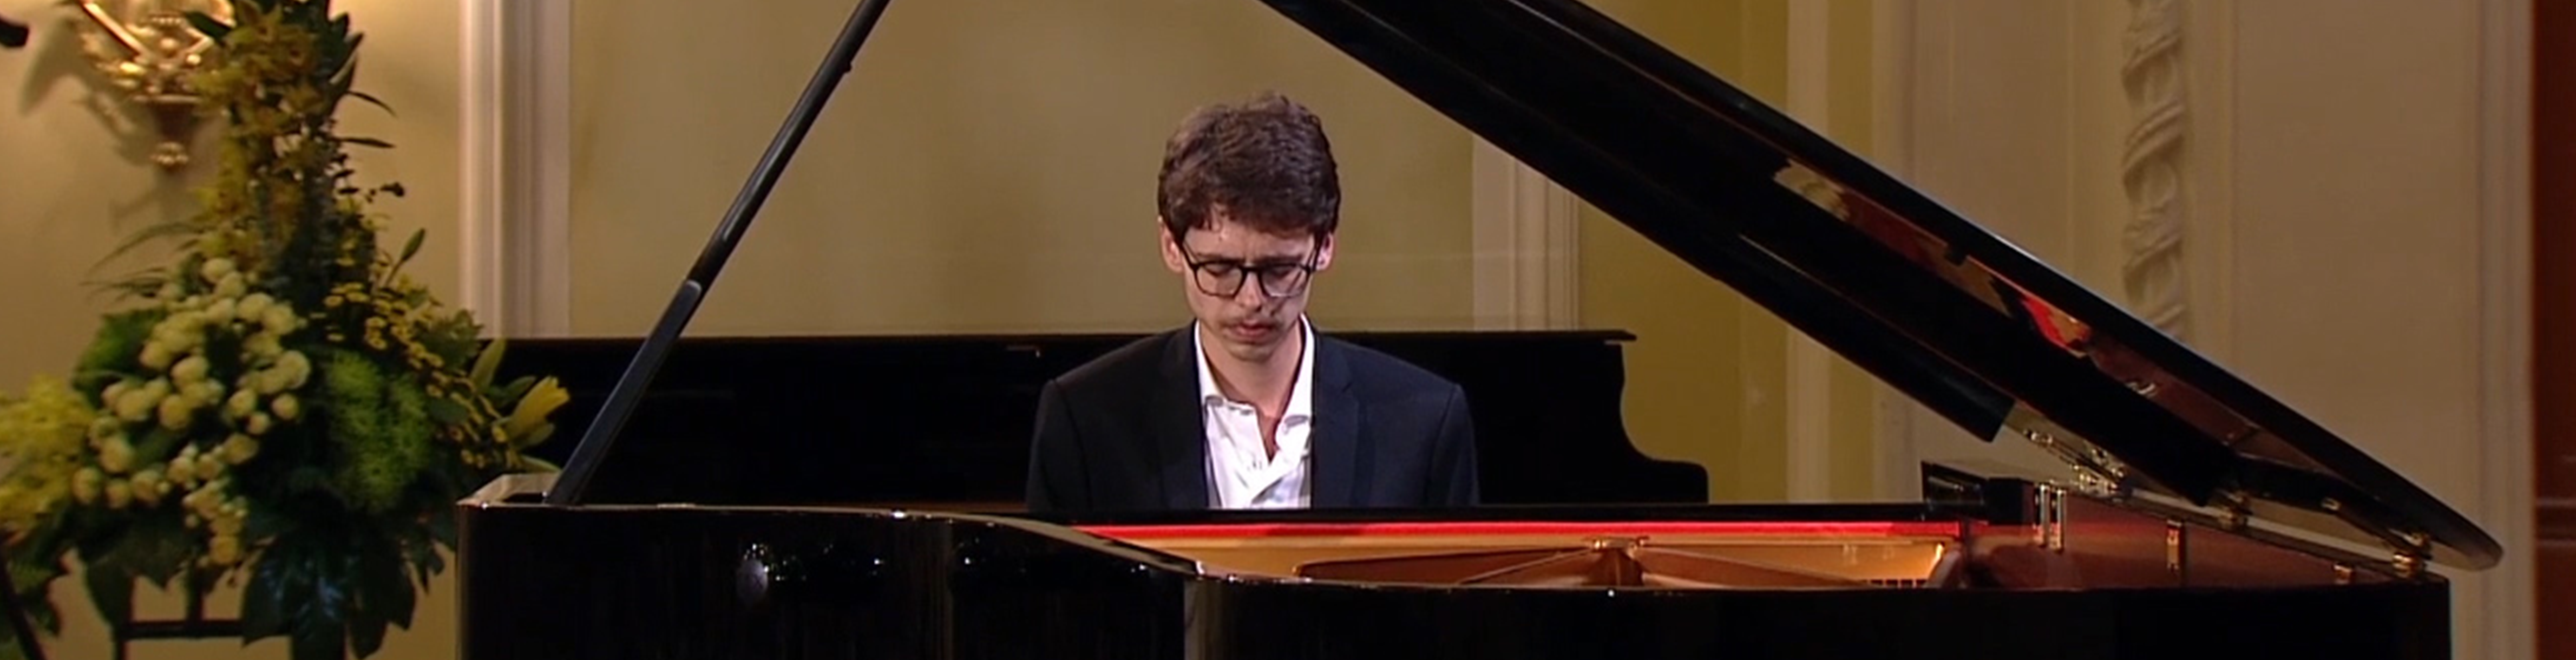 Lucas Debargue plays Chopin, Liszt, Rachmaninov, and Tchaikovsky